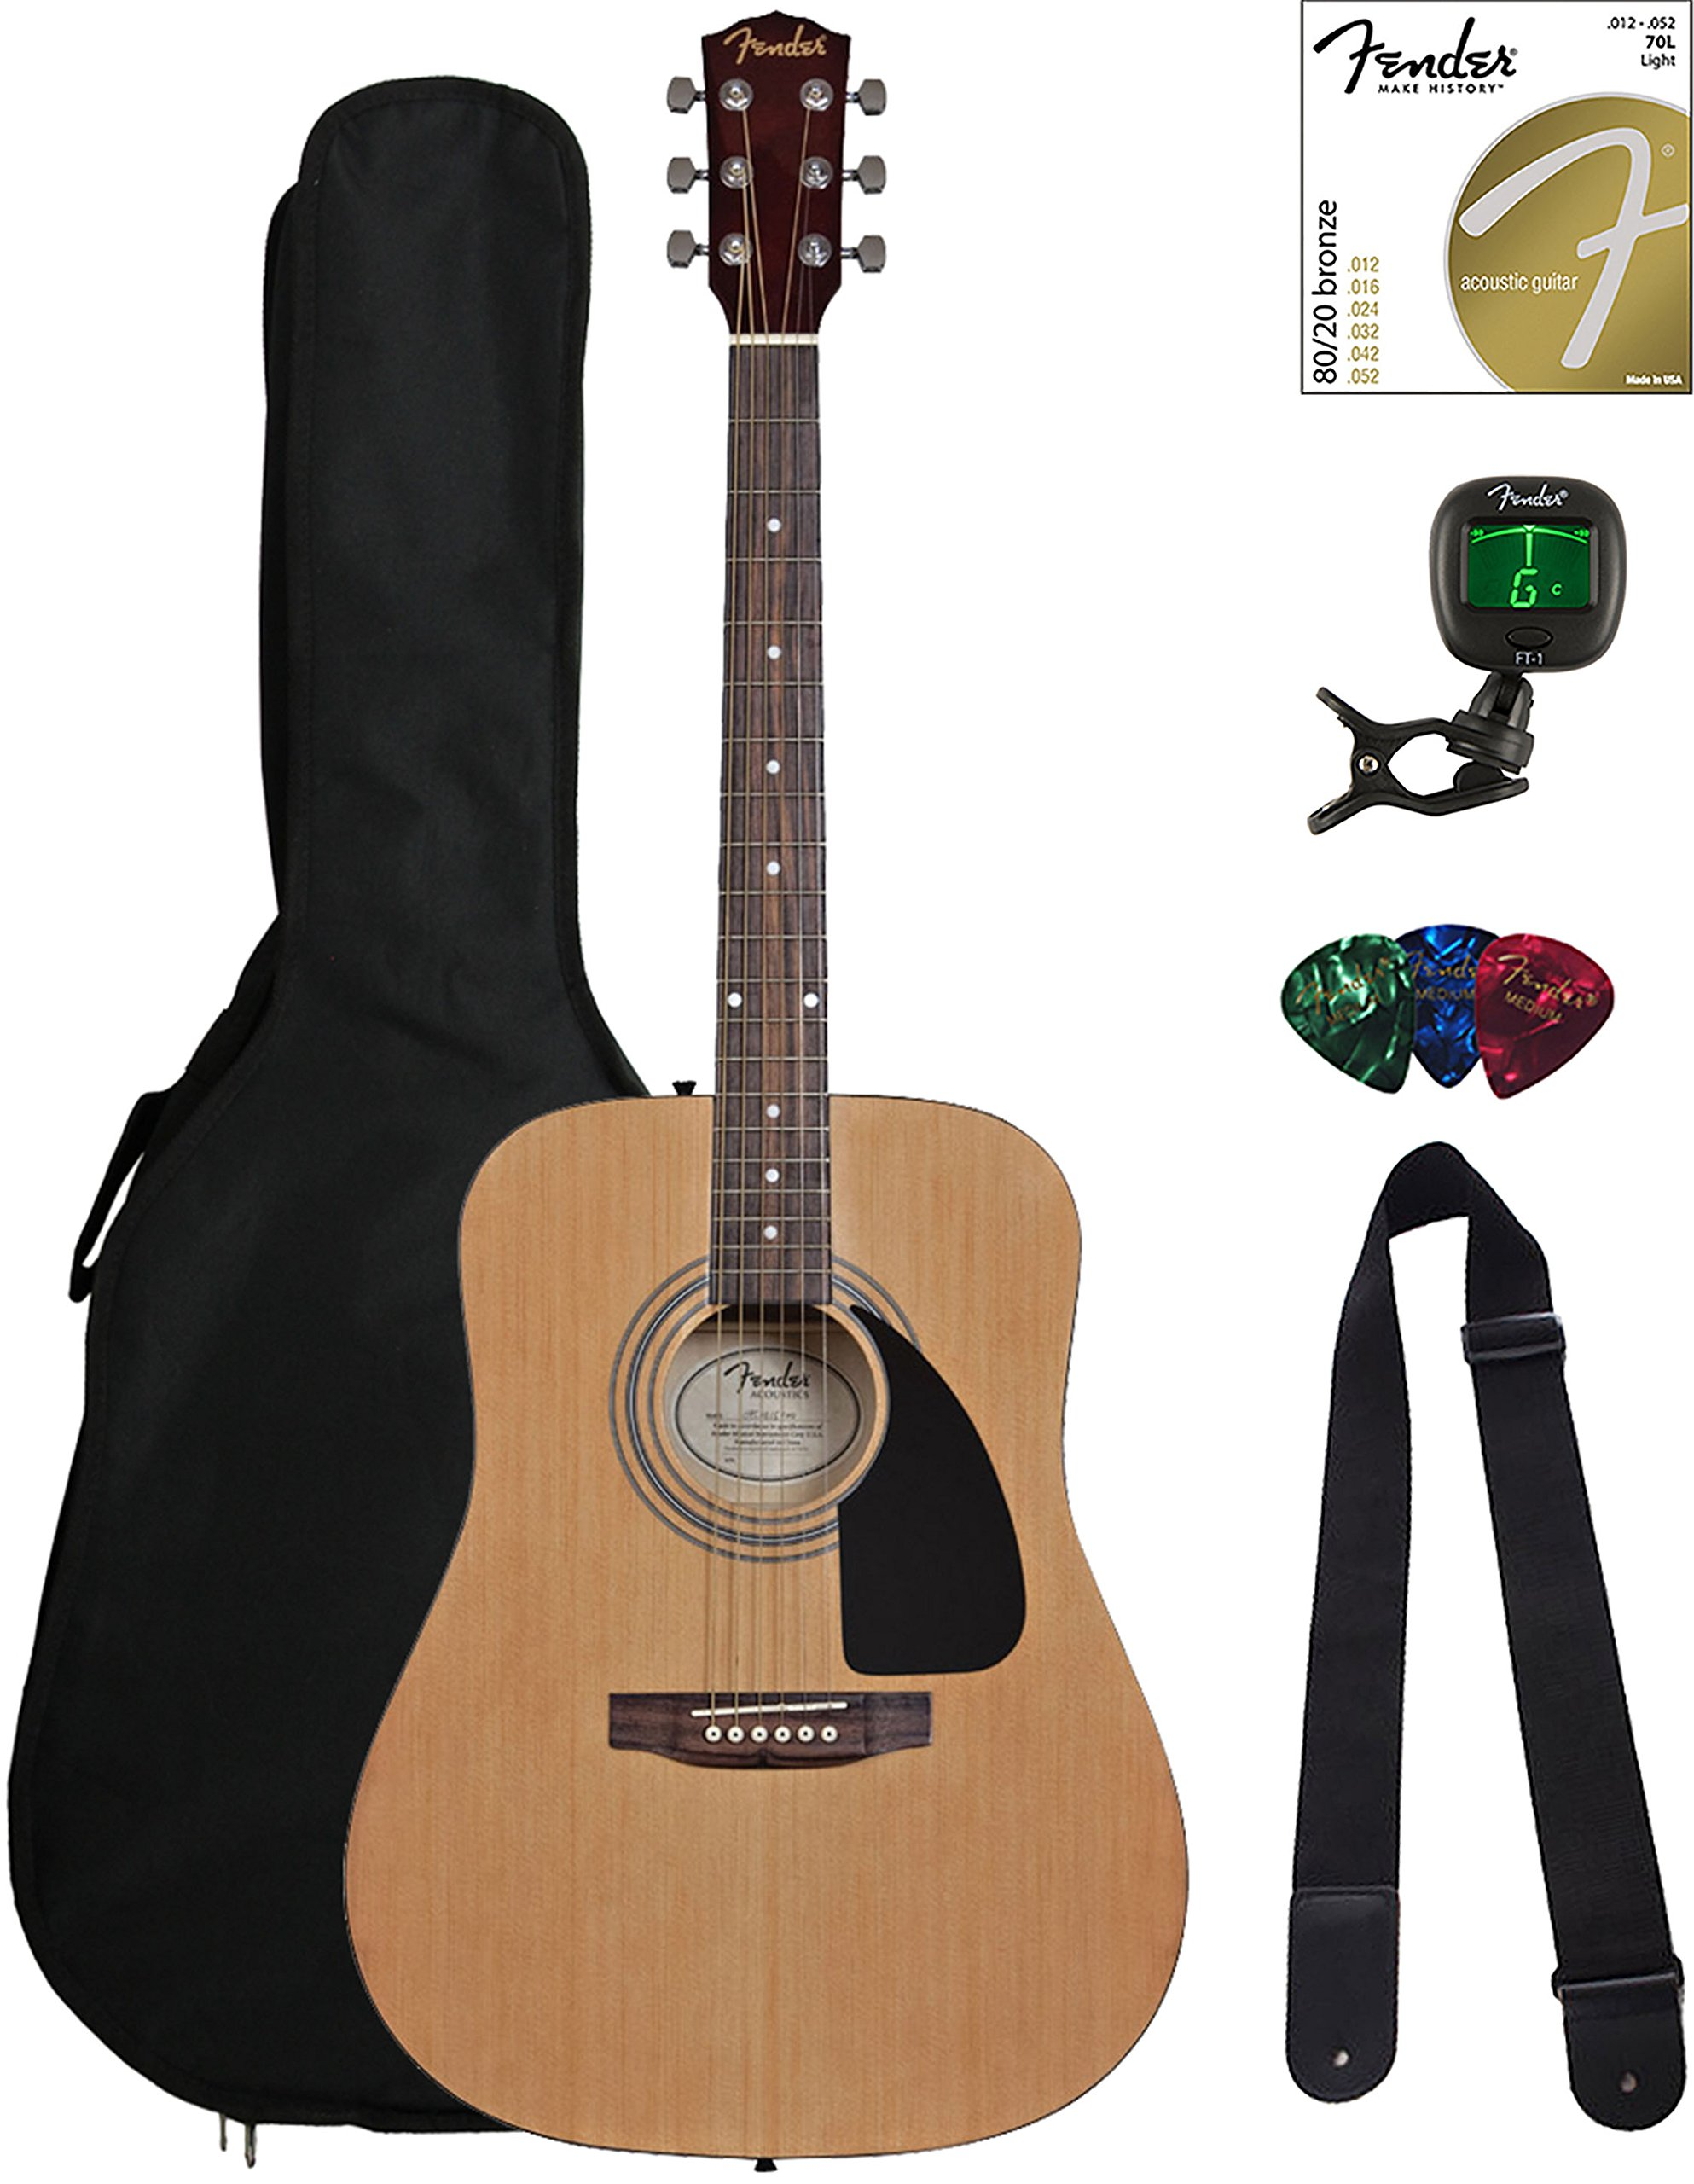 Fender FA-115 Dreadnought Acoustic Guitar - Natural Bundle with Gig Bag, Tuner, Strings, Strap, and Picks by Fender